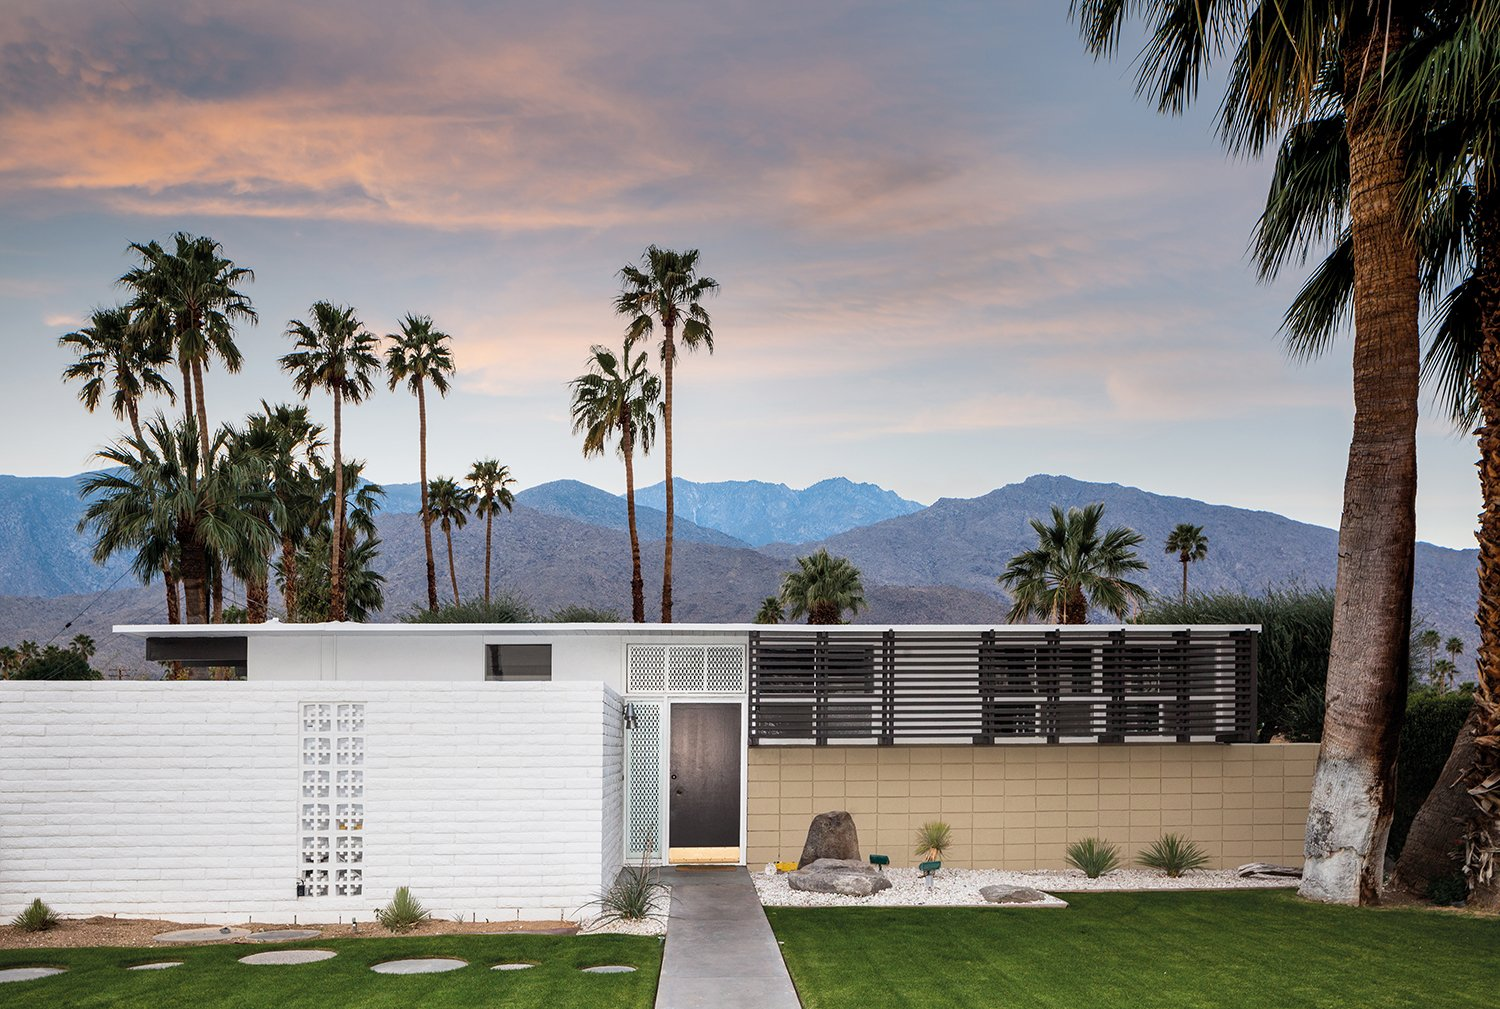 Exterior, House Building Type, Mid-Century Building Type, Flat RoofLine, Brick Siding Material, and Concrete Siding Material Another 1956 tract house with a flat roof designed by Krisel.  A Crash Course in Palm Springs Architecture